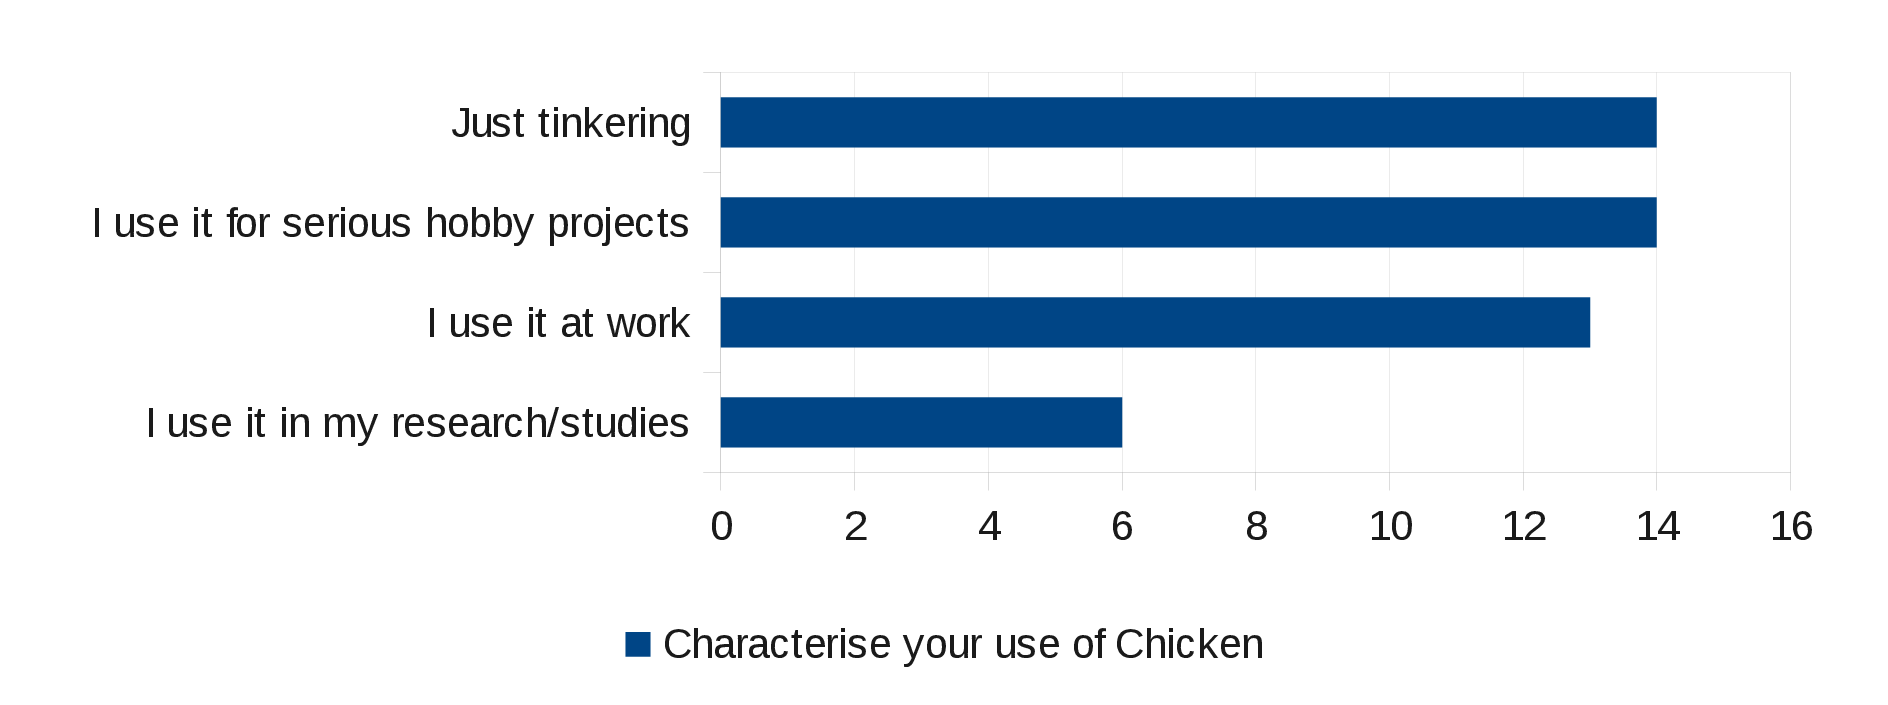 Uses of CHICKEN